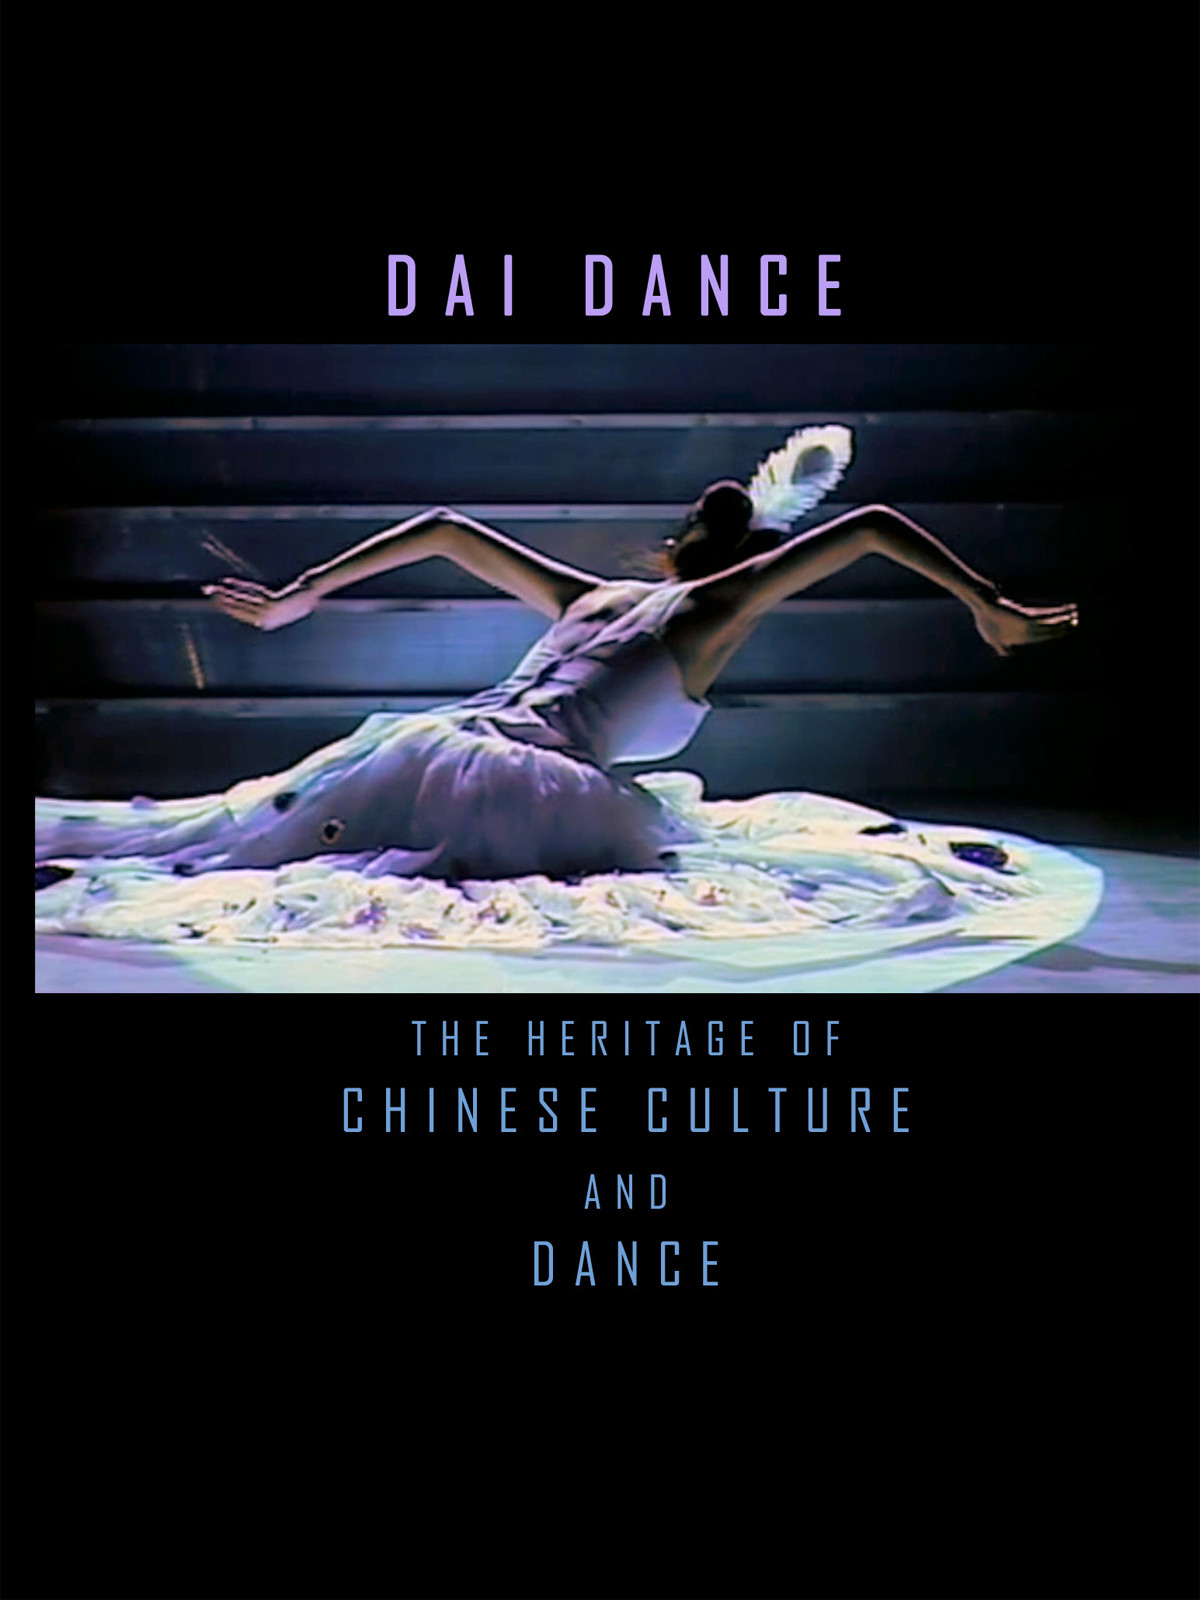 T8923 - The Heritage of Chinese Culture and Dance Ethnic Dance-Dai